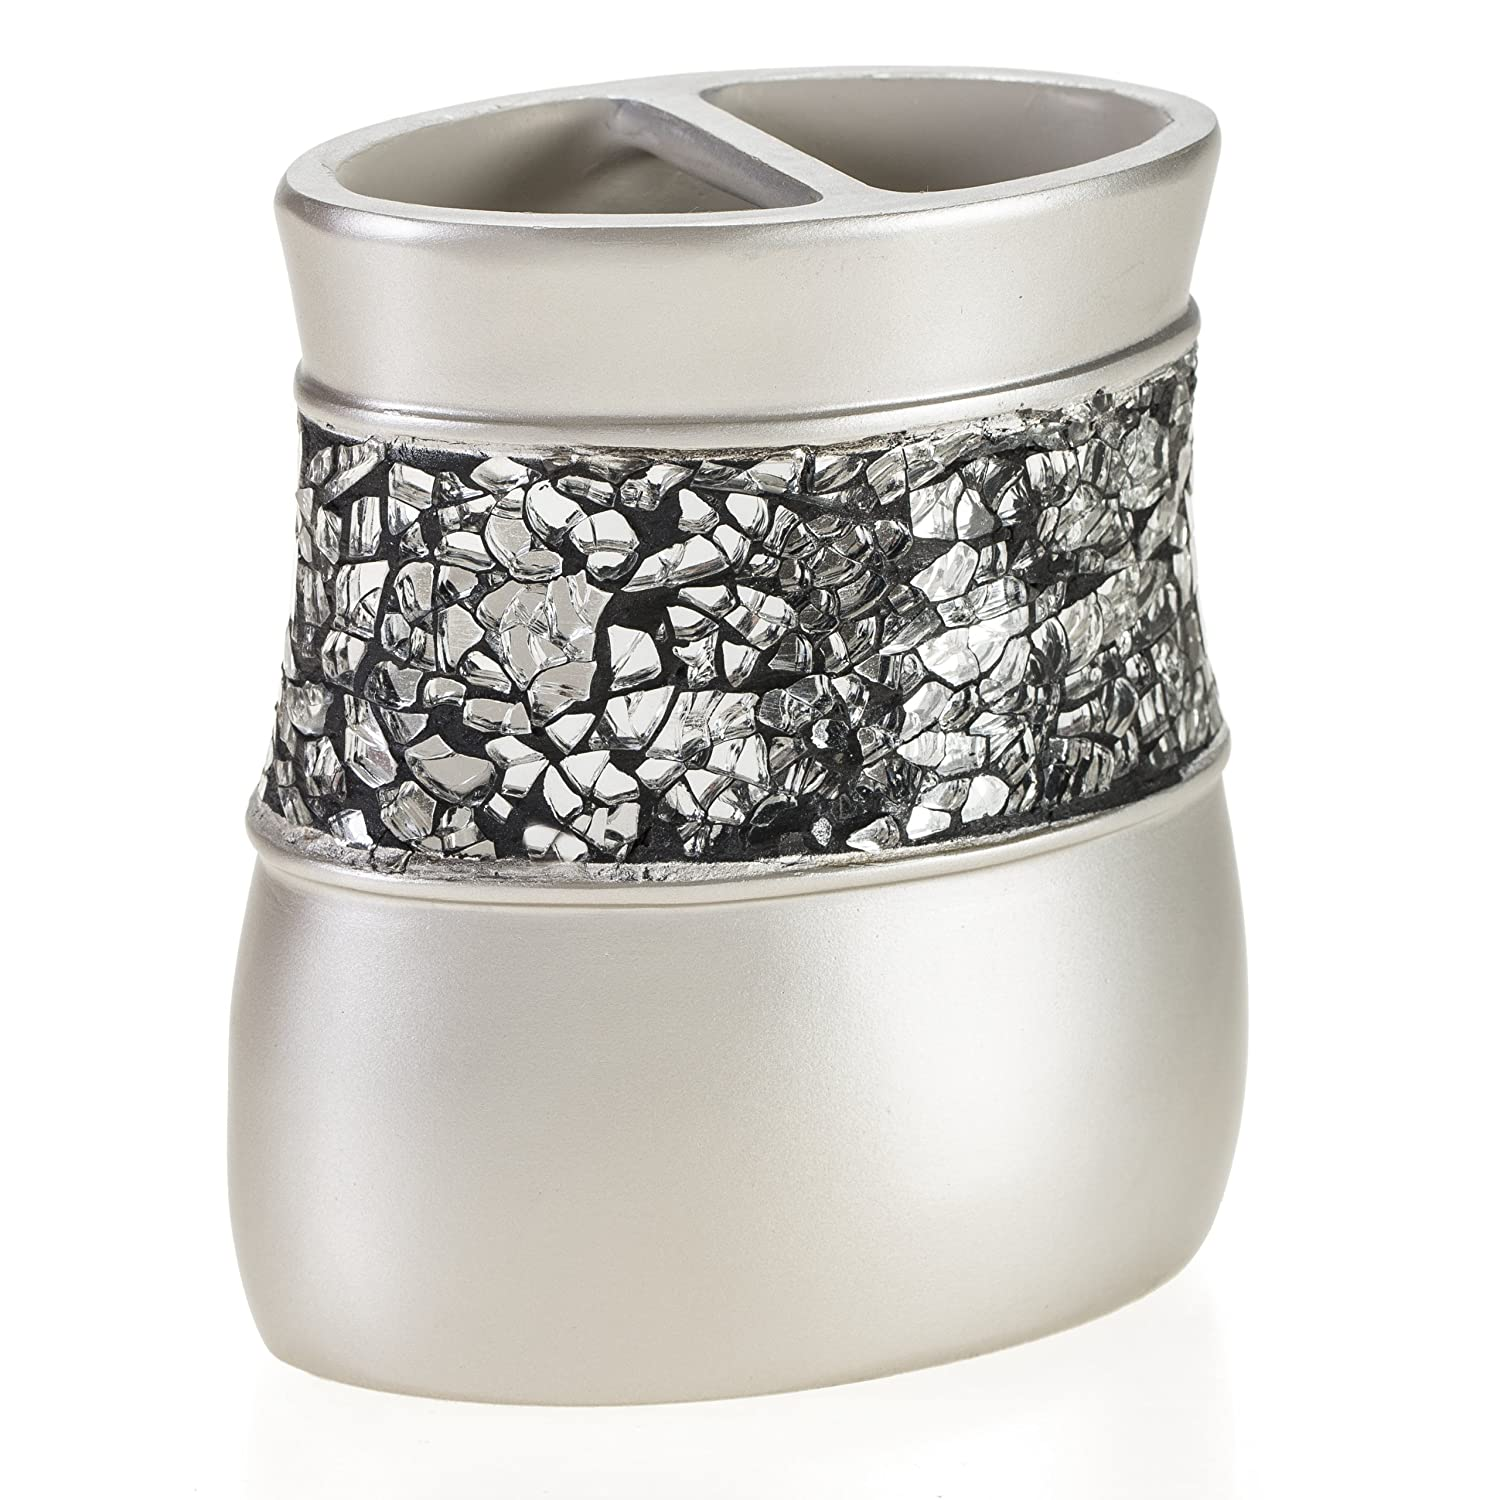 Amazon.com: Creative Scents Bathroom Silver Toothbrush Holder ...